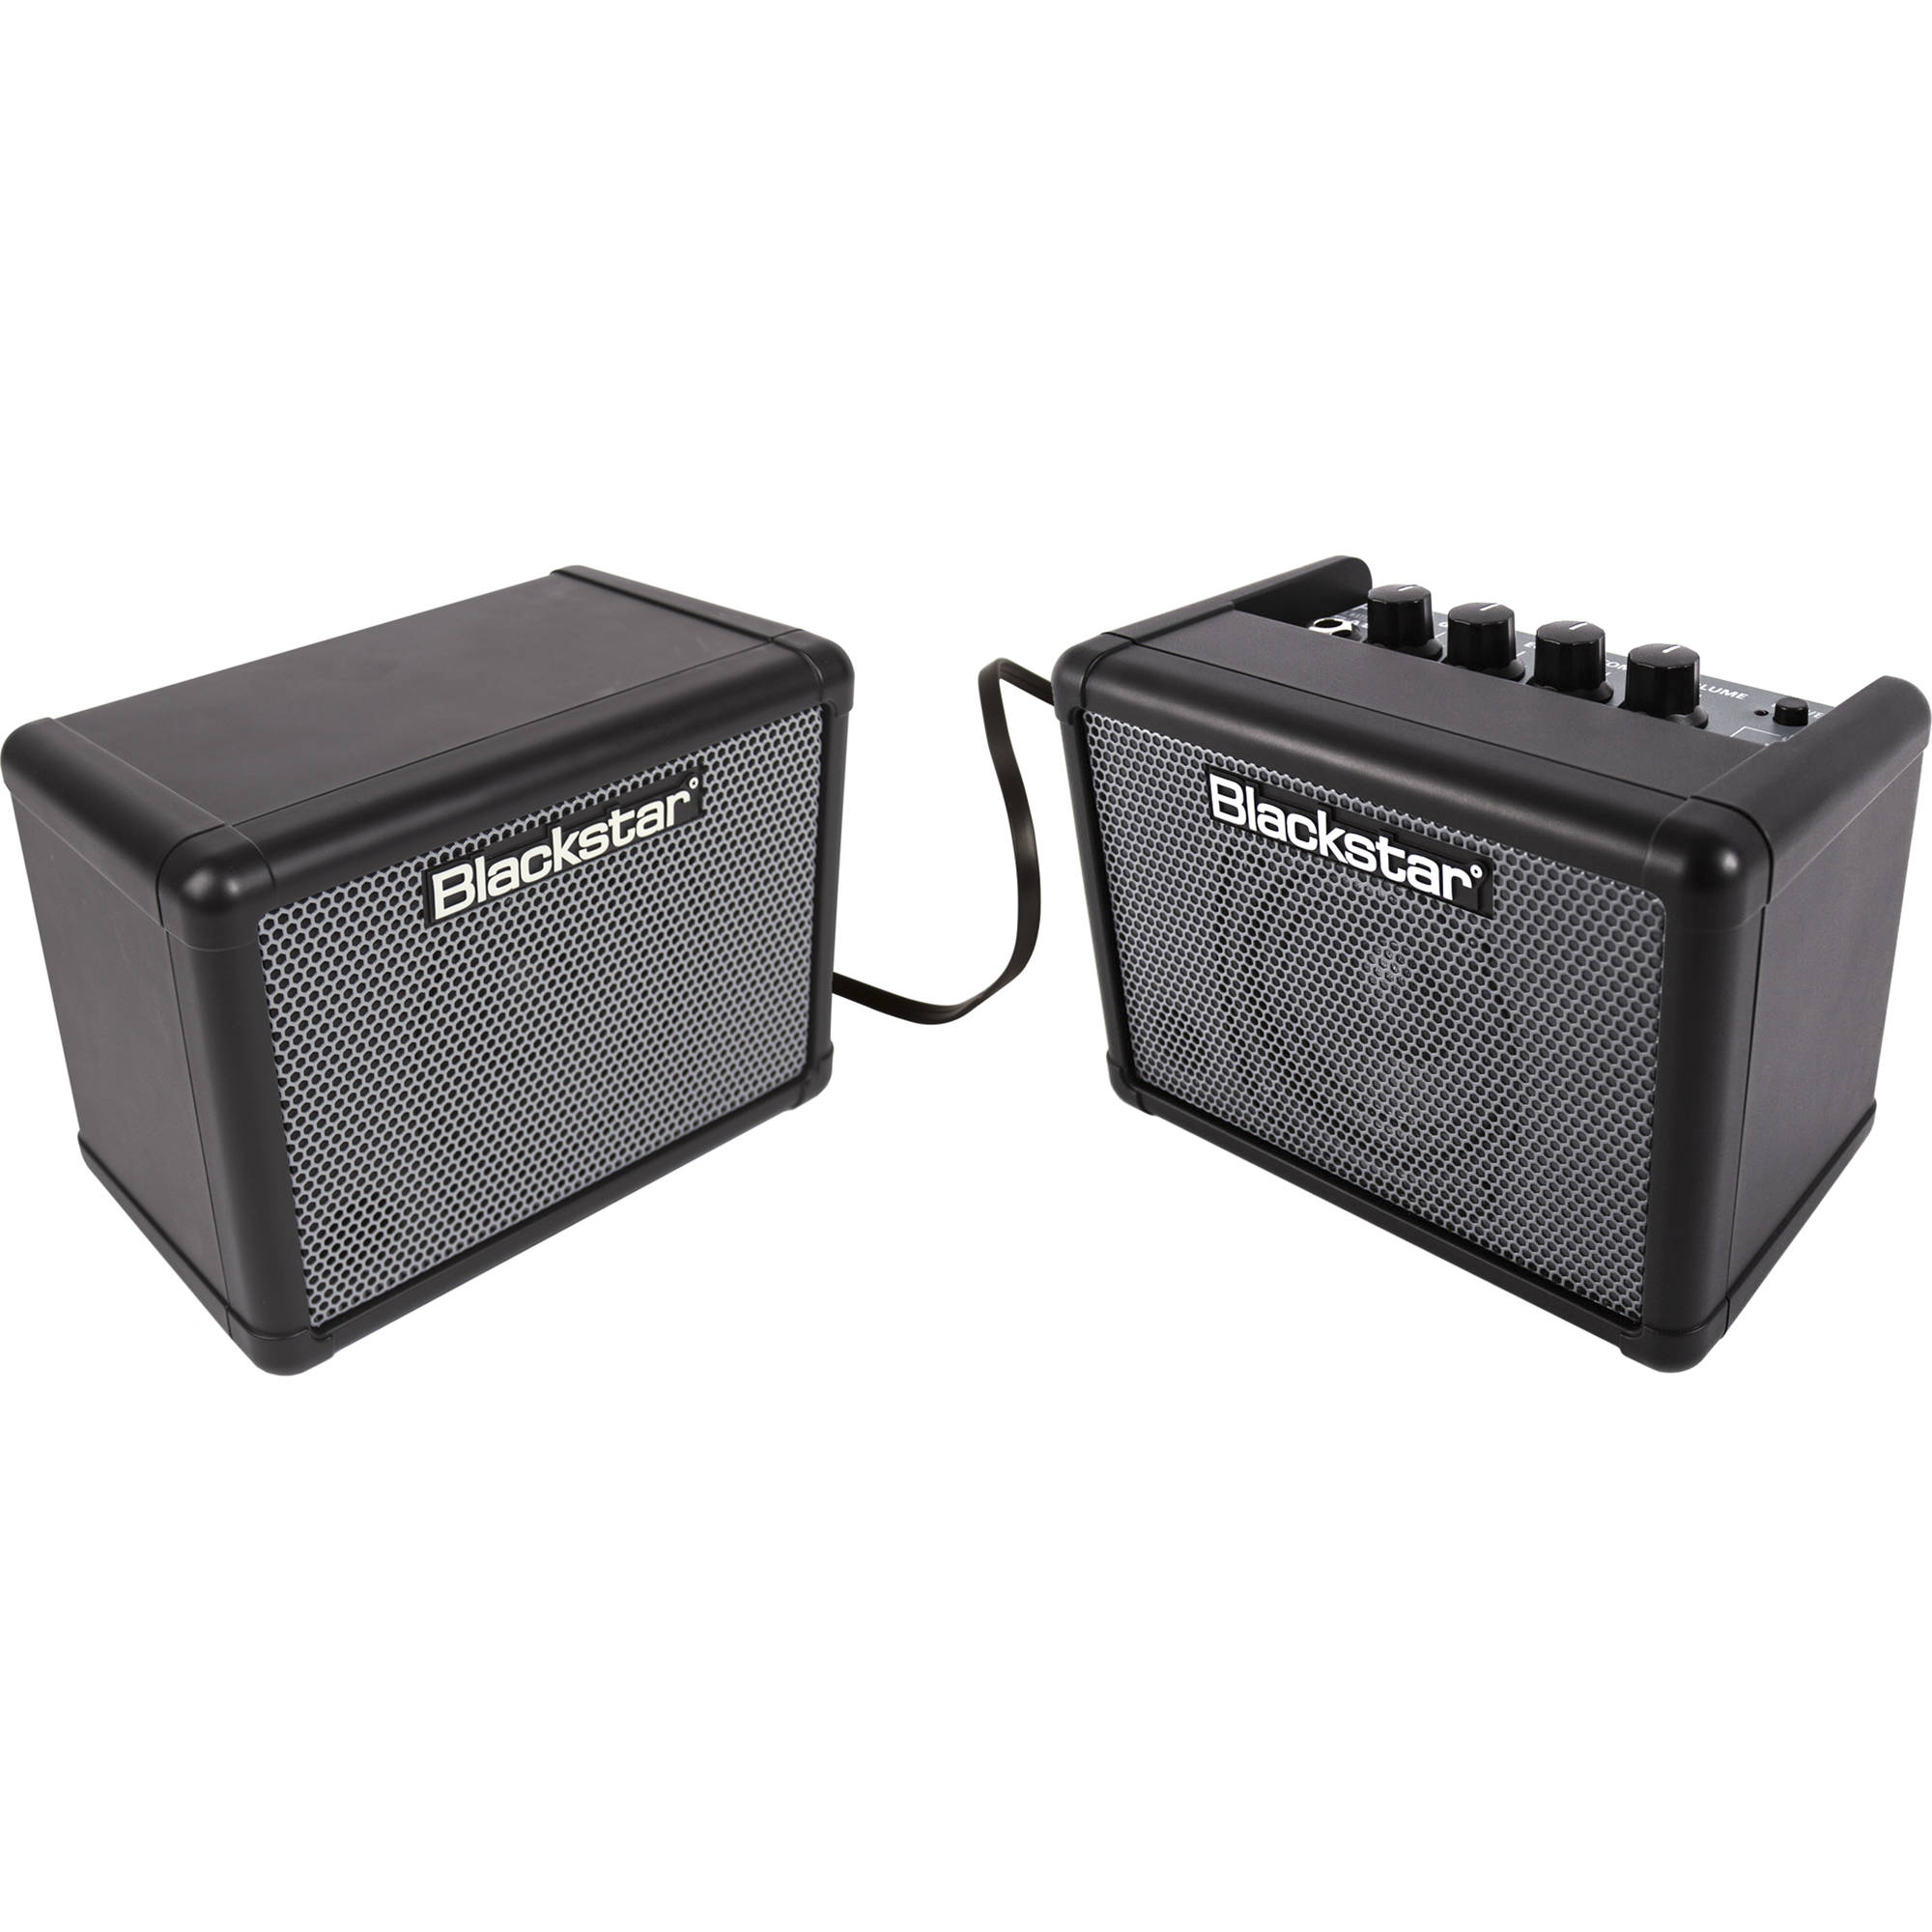 Blackstar Power Supply for FLY 3 Mini Guitar Amps